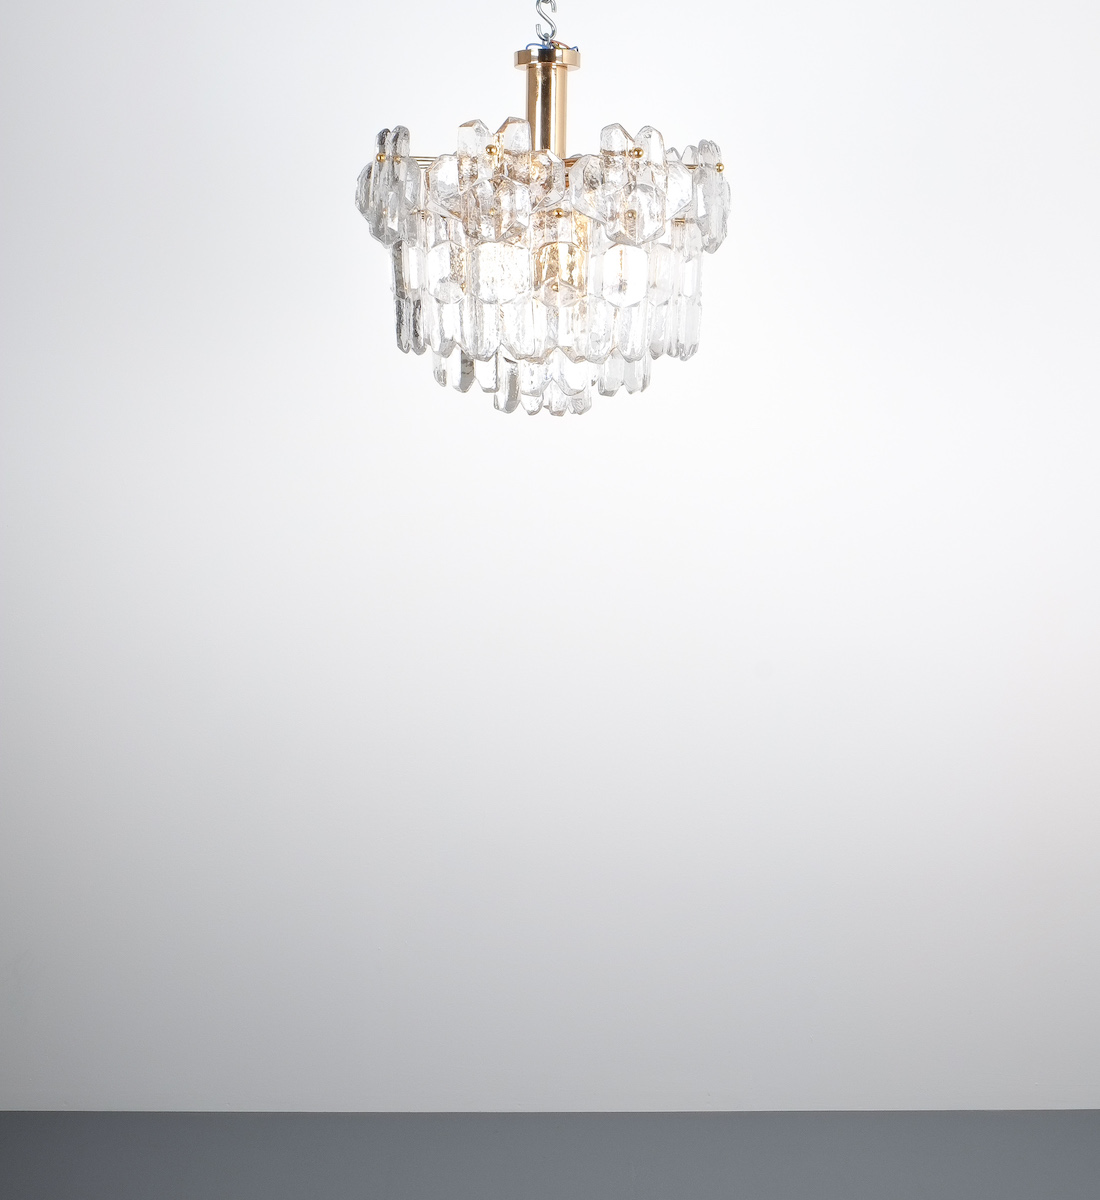 mount shade smoke clear and round lights chandelier white ceiling crystals picture organza contemporary chandeliers crystal s black chrome lamp lighting flush stores brizzo finish of